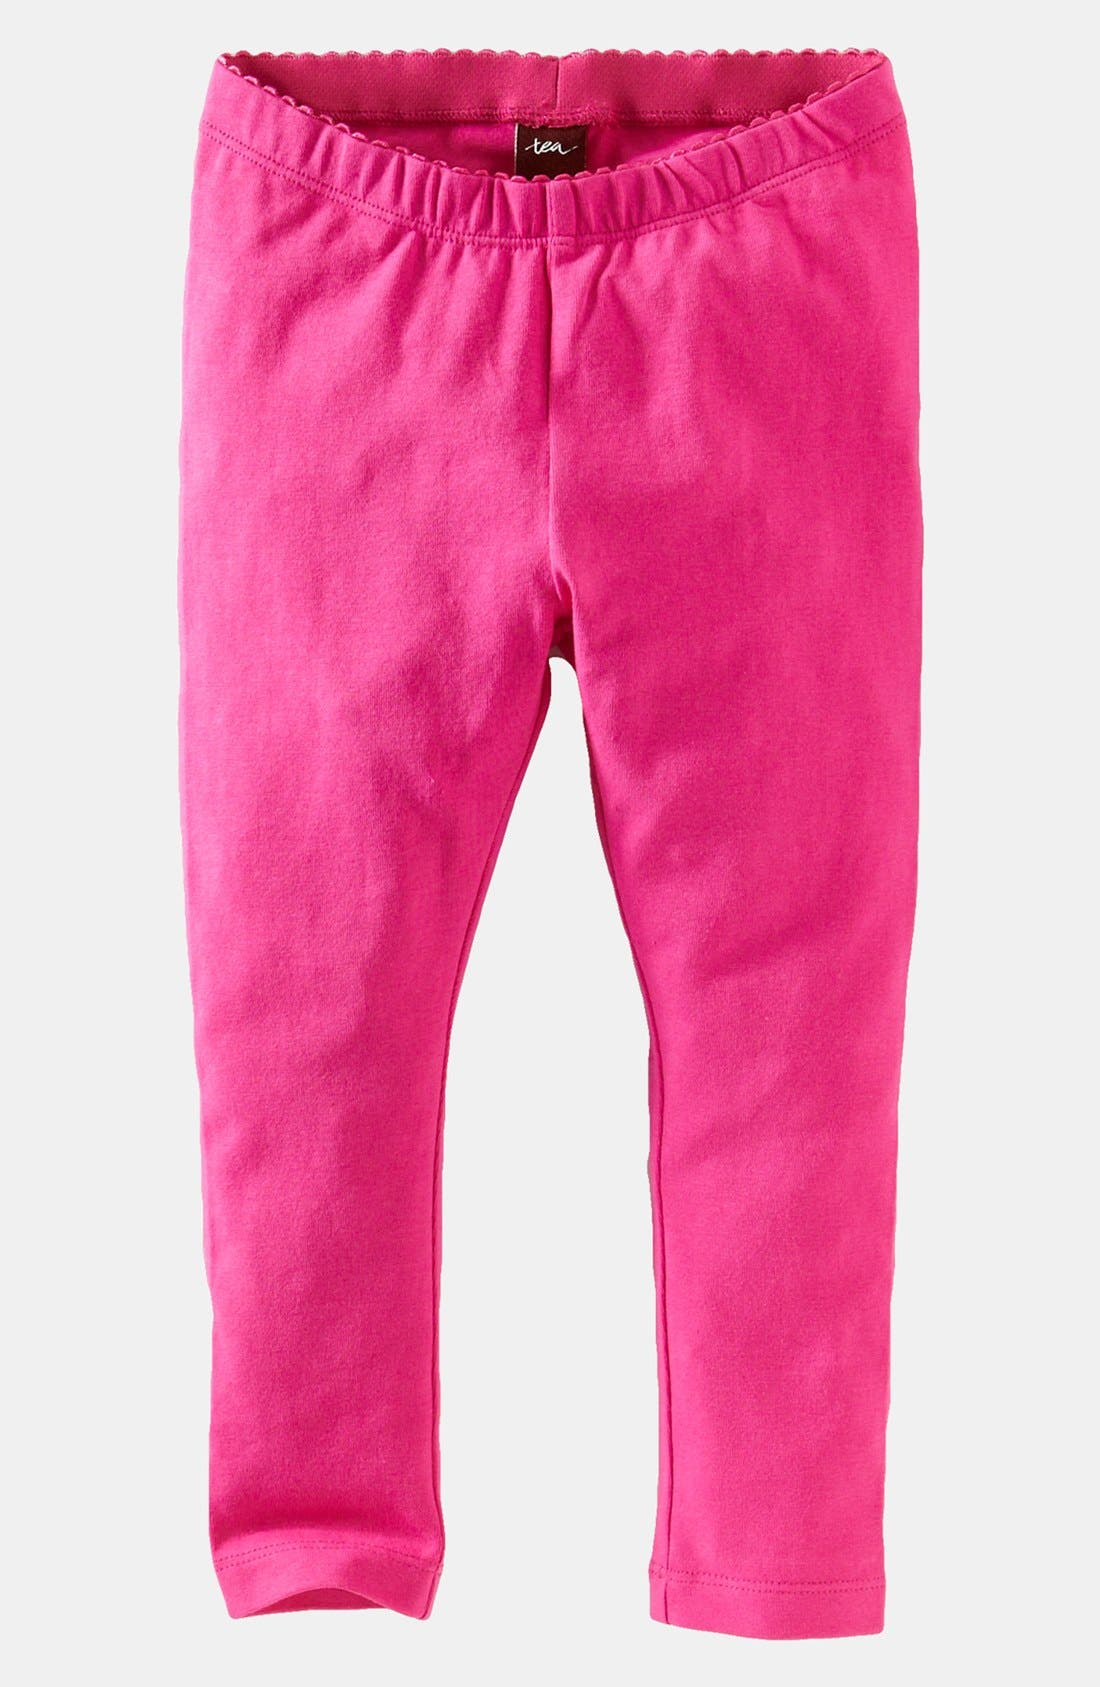 Alternate Image 1 Selected - Tea Collection Skinny Stretch Leggings (Toddler Girls)